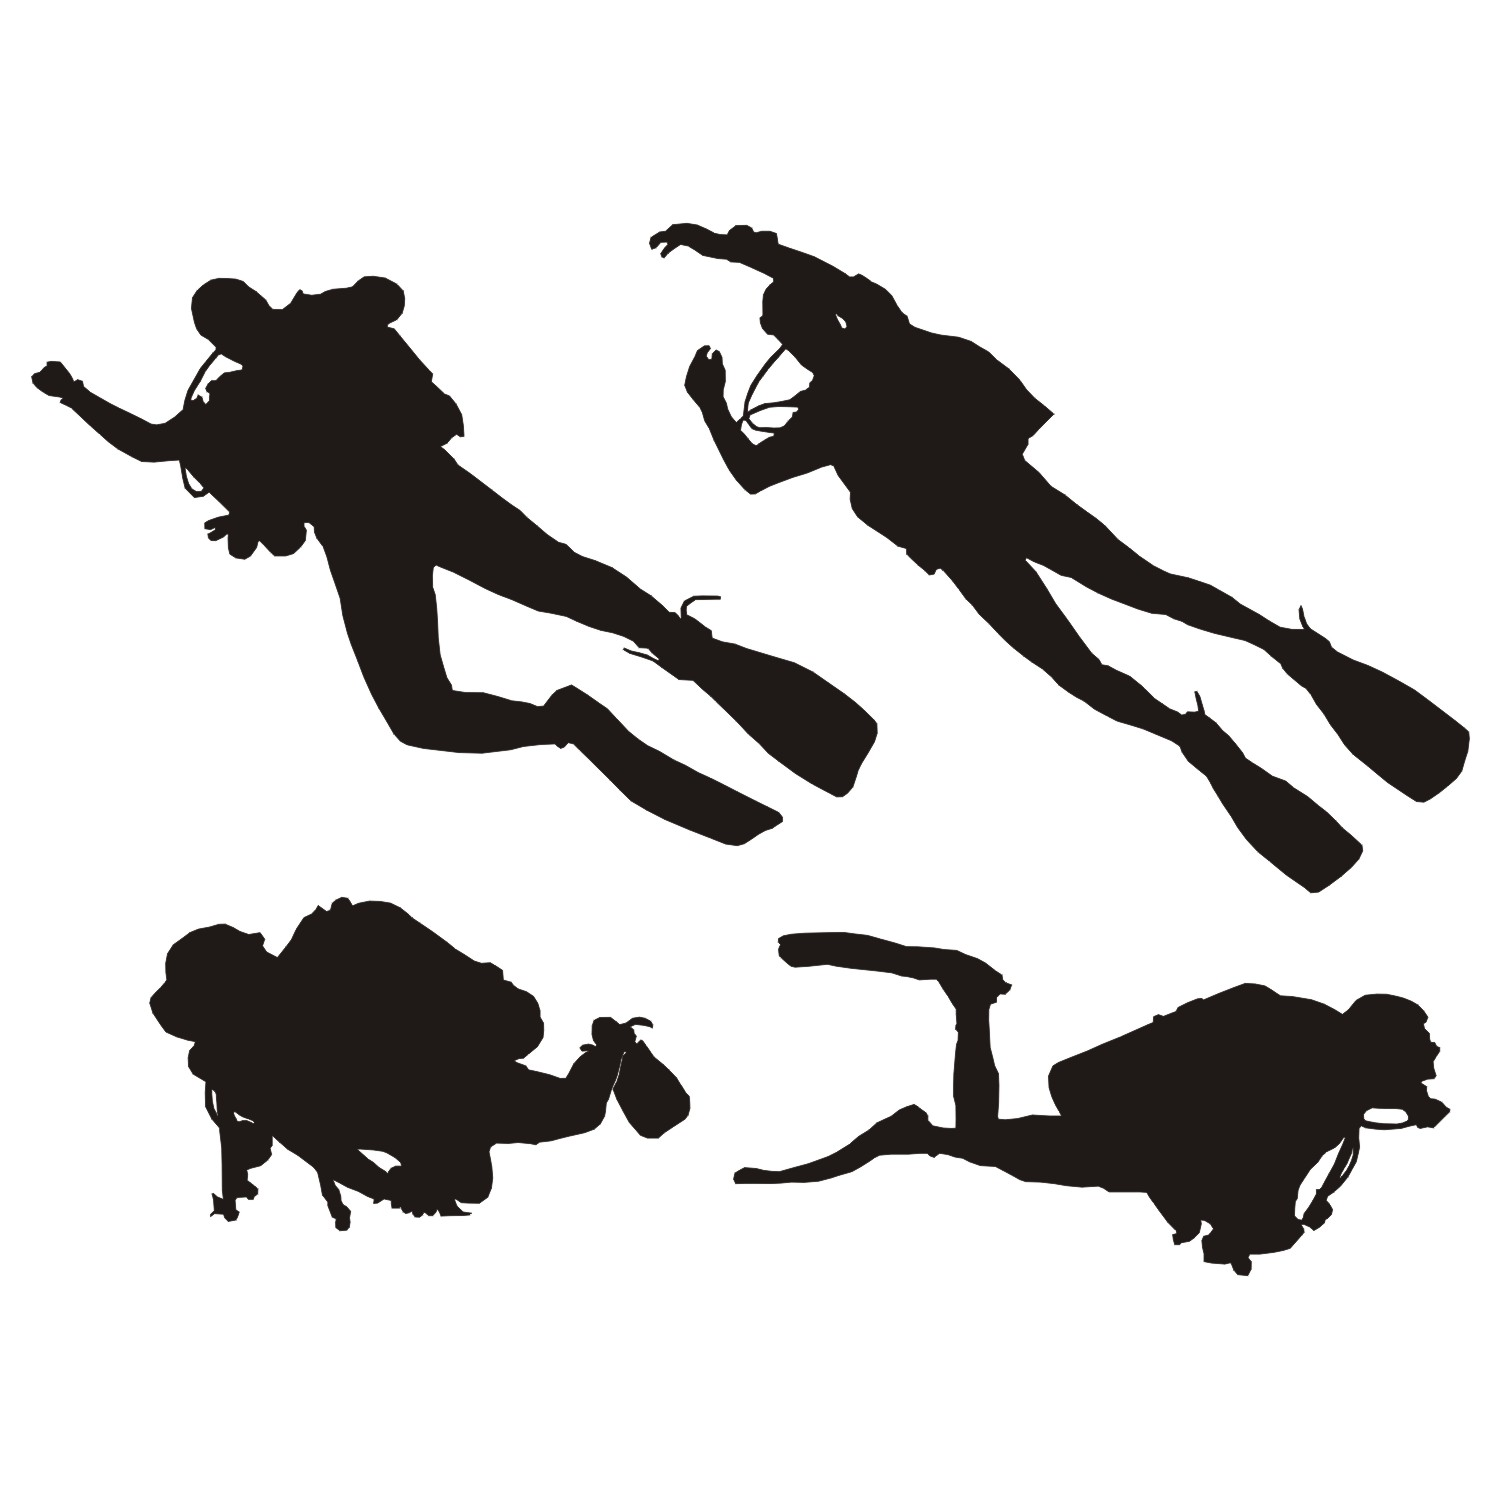 Diving silhouette